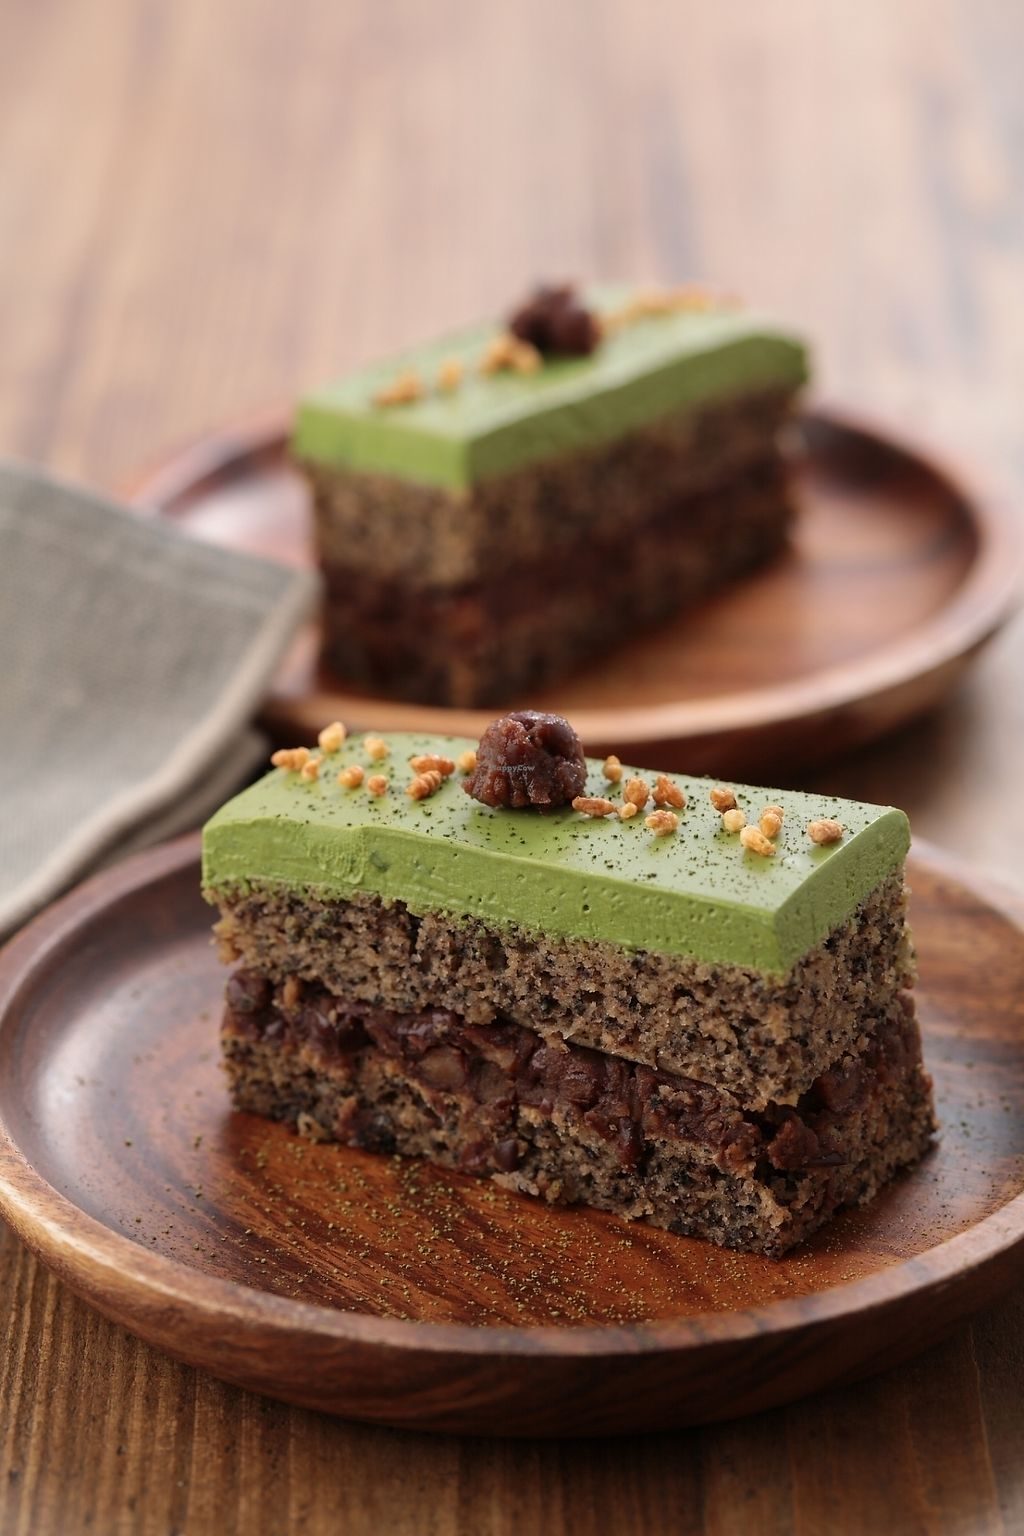 """Photo of Flourish  by <a href=""""/members/profile/AhQQQ"""">AhQQQ</a> <br/>Mocha and black sesame rice cake <br/> August 15, 2017  - <a href='/contact/abuse/image/77235/292829'>Report</a>"""